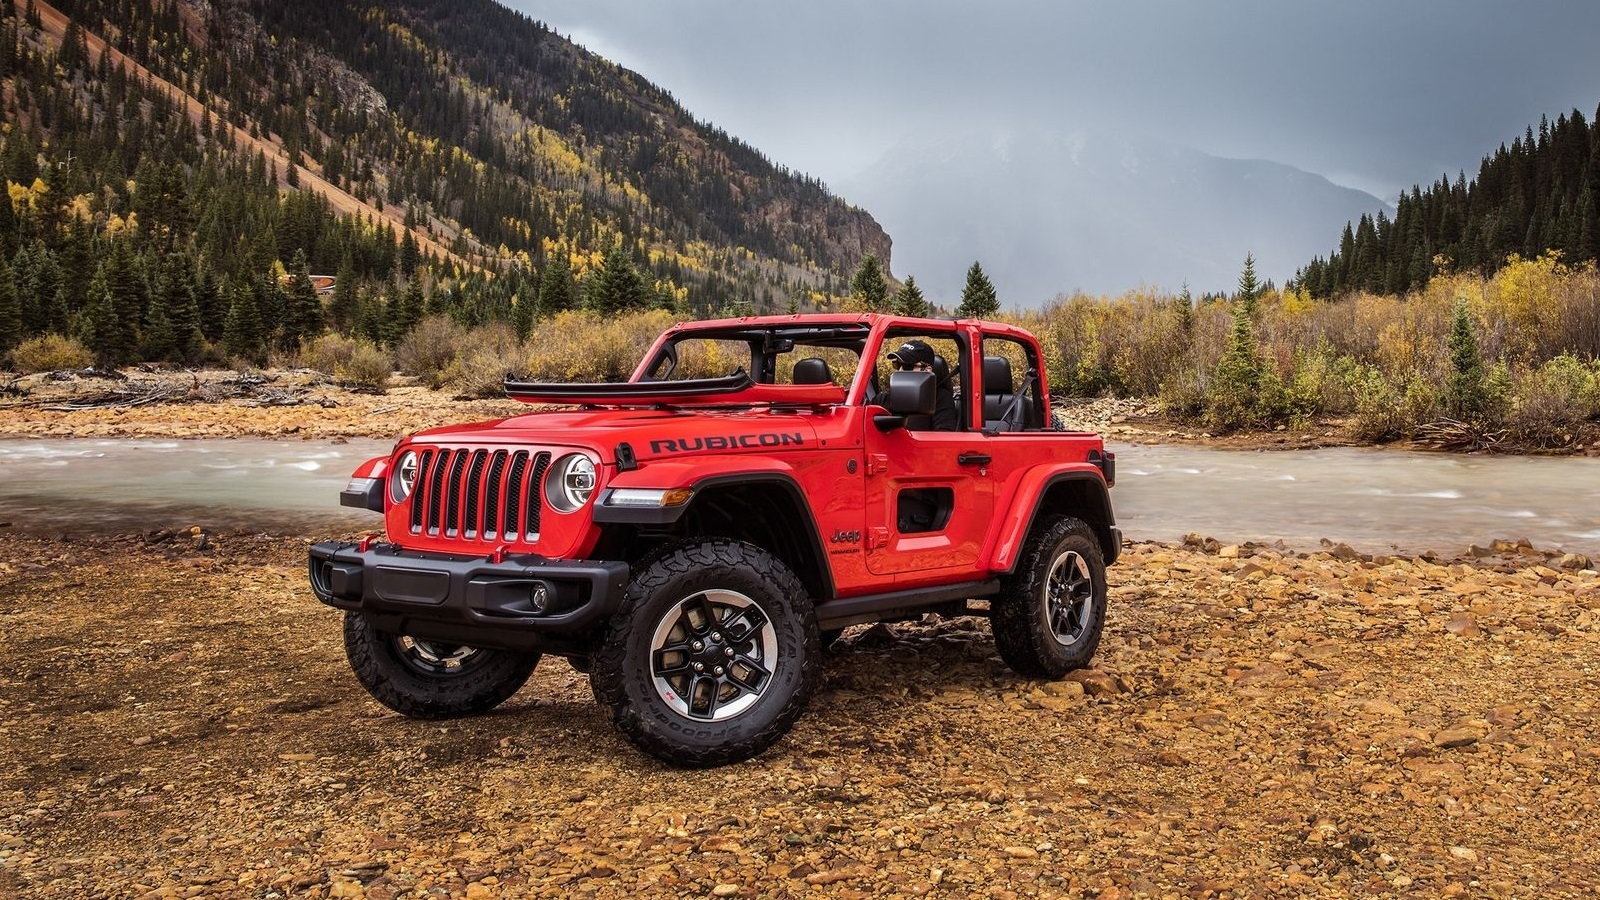 Soft-top Rubicon Spied Out